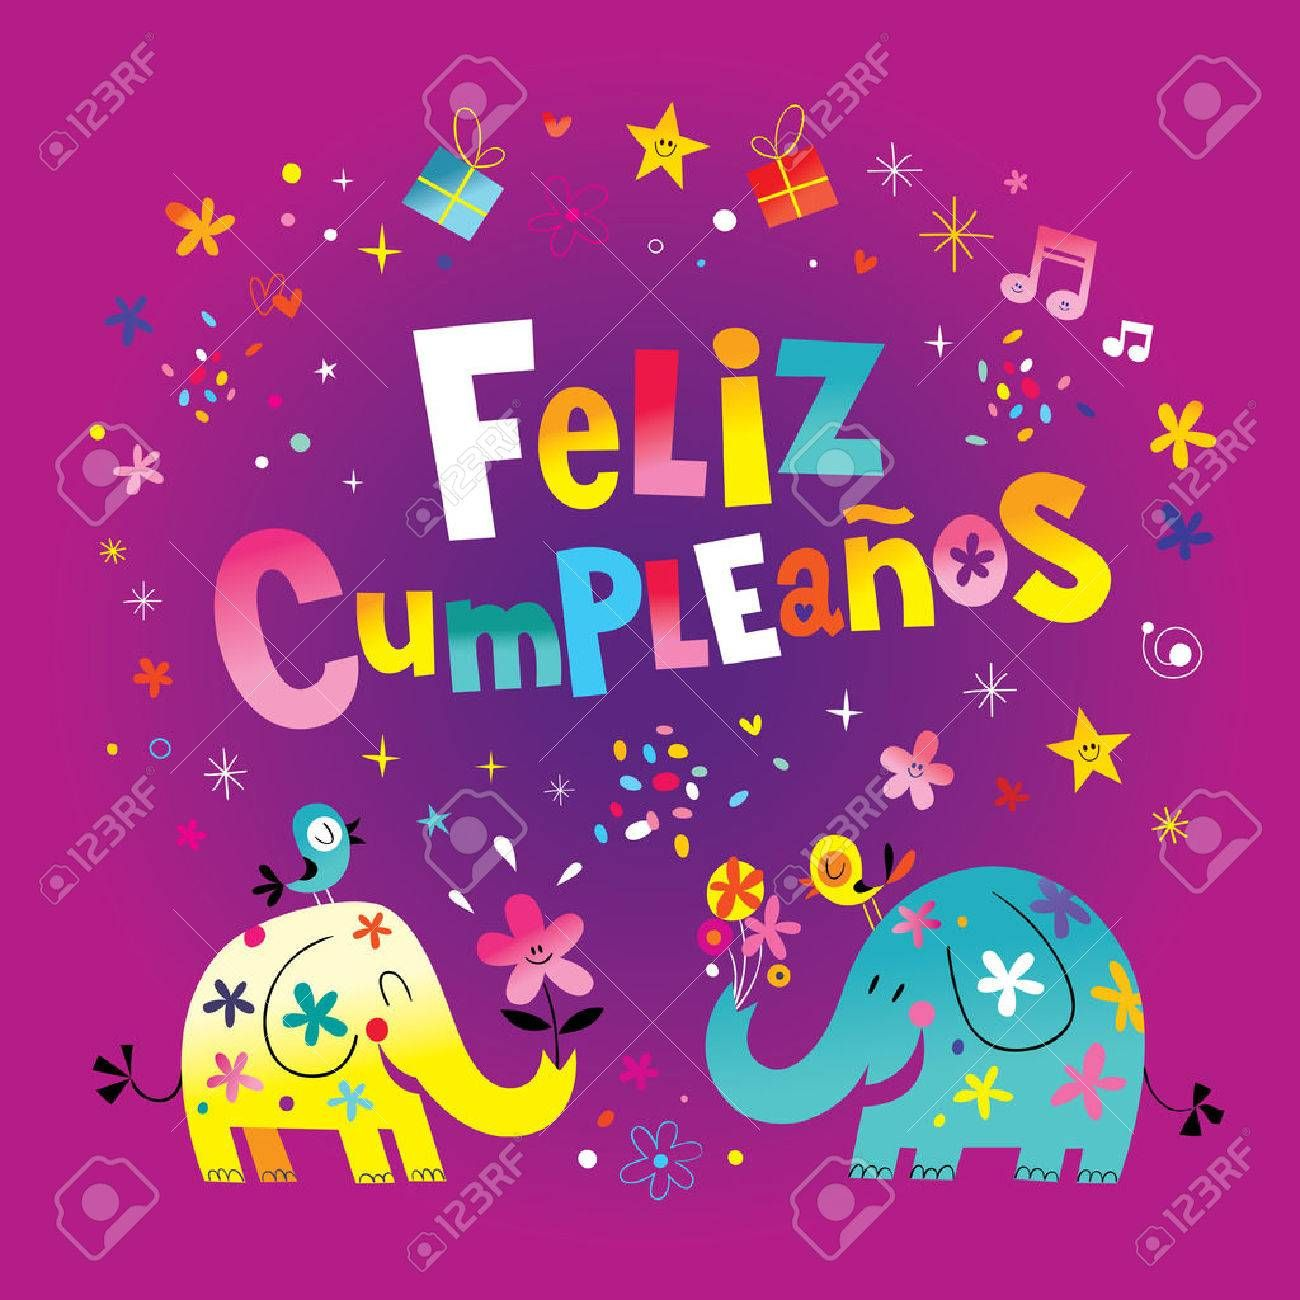 Feliz Cumpleanos Happy Birthday In Spanish Greeting Card With Cute